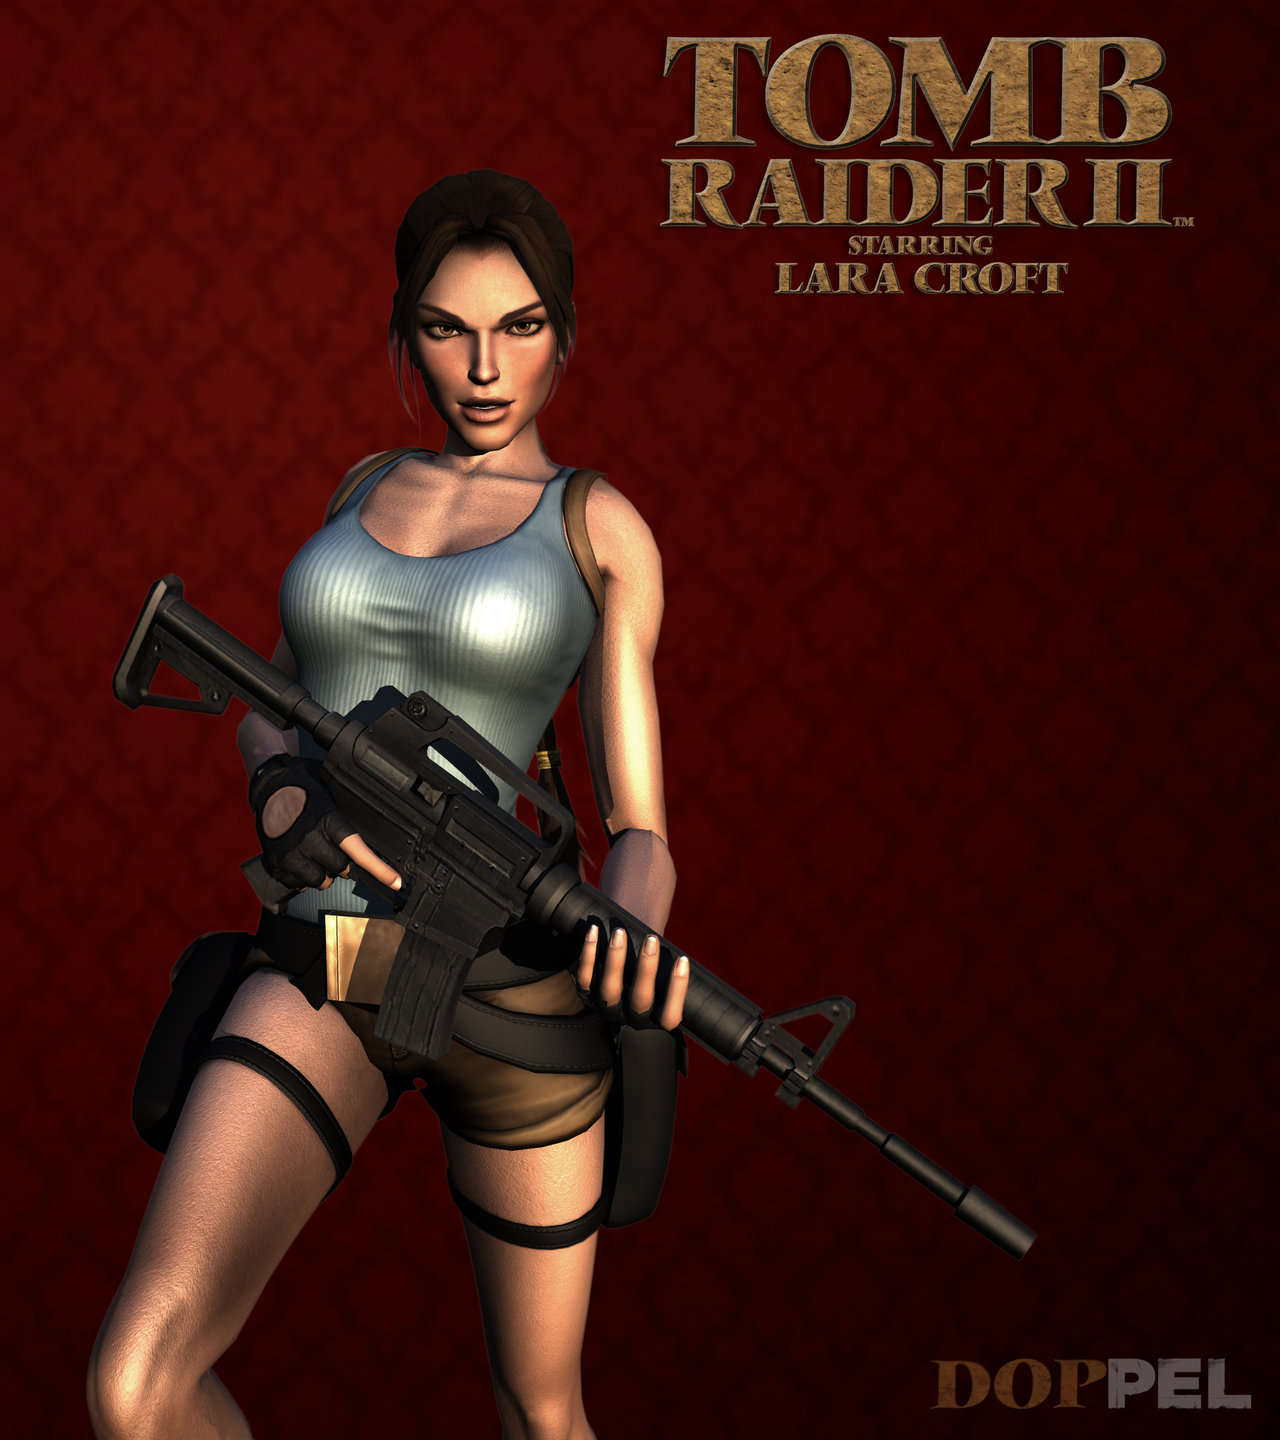 Tomb Raider II: Revised